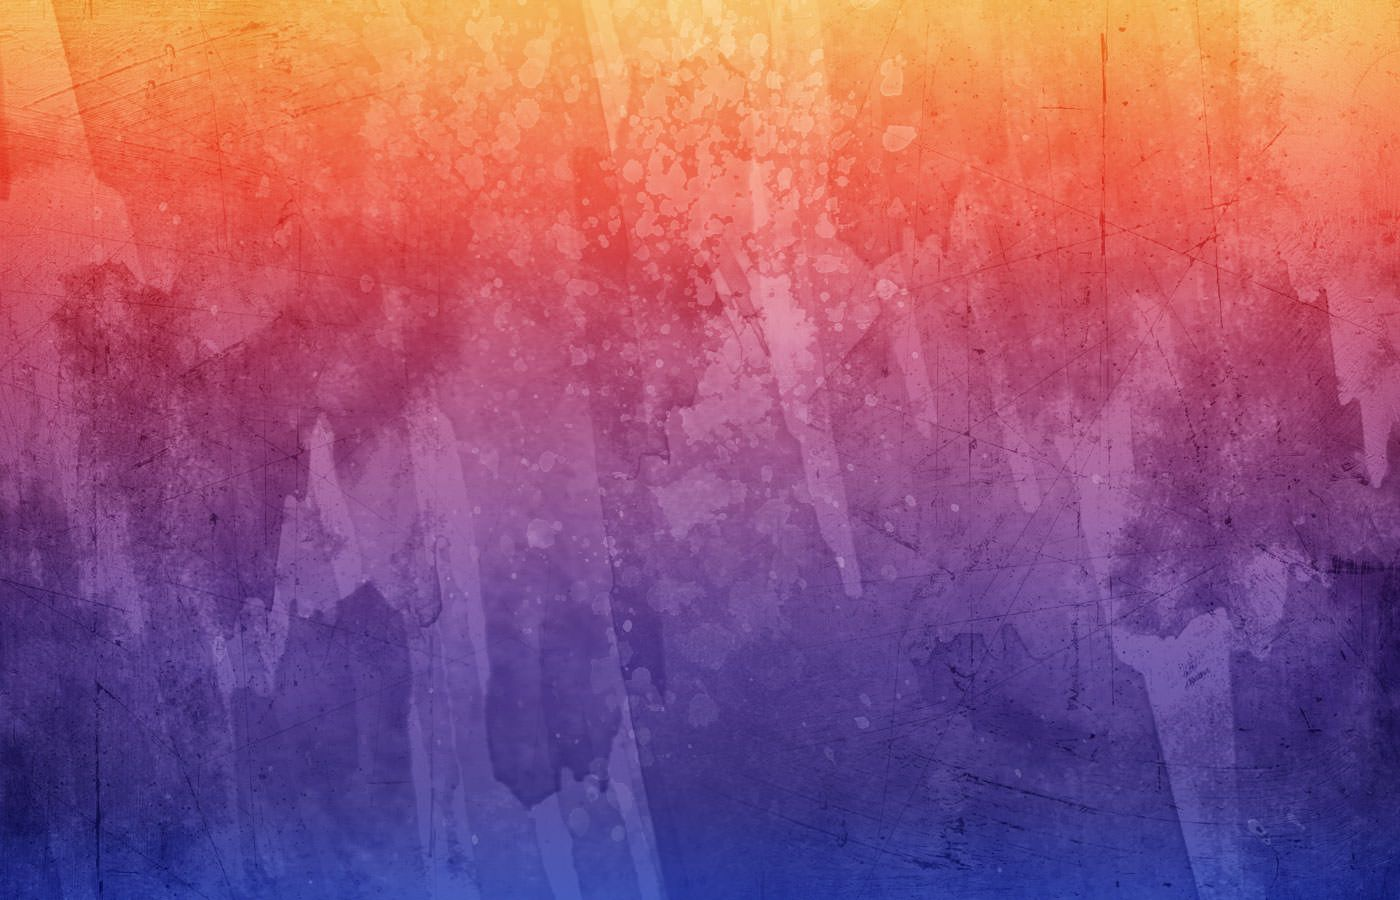 Colorful Grungy Watercolor Texture Backgrounds Watercolour